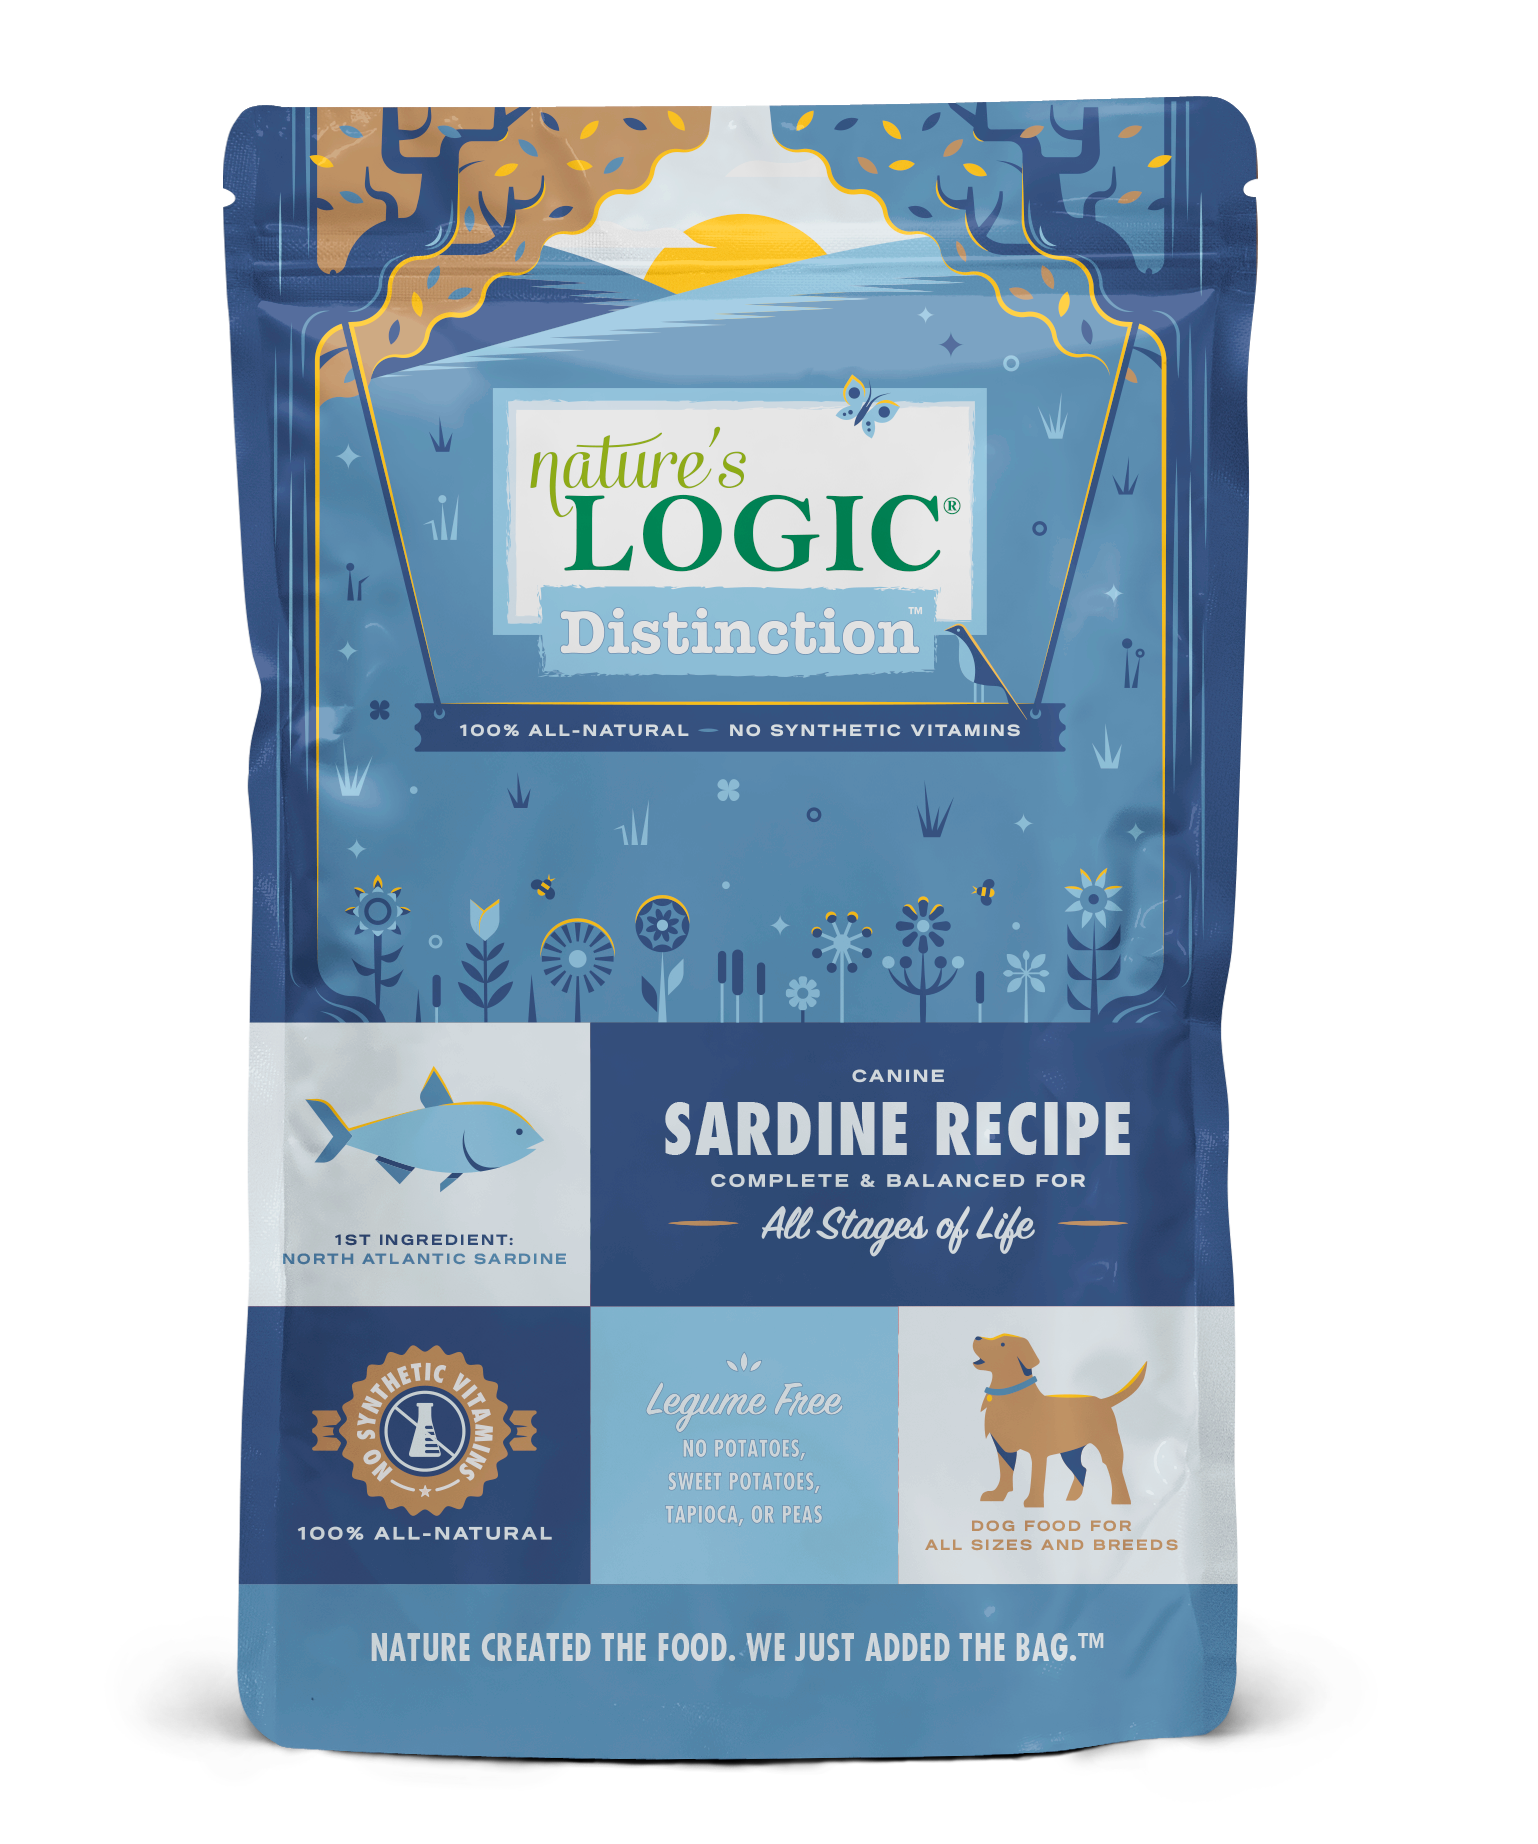 Nature's Logic Distinction Sardine Recipe Dog Food, 12-lb